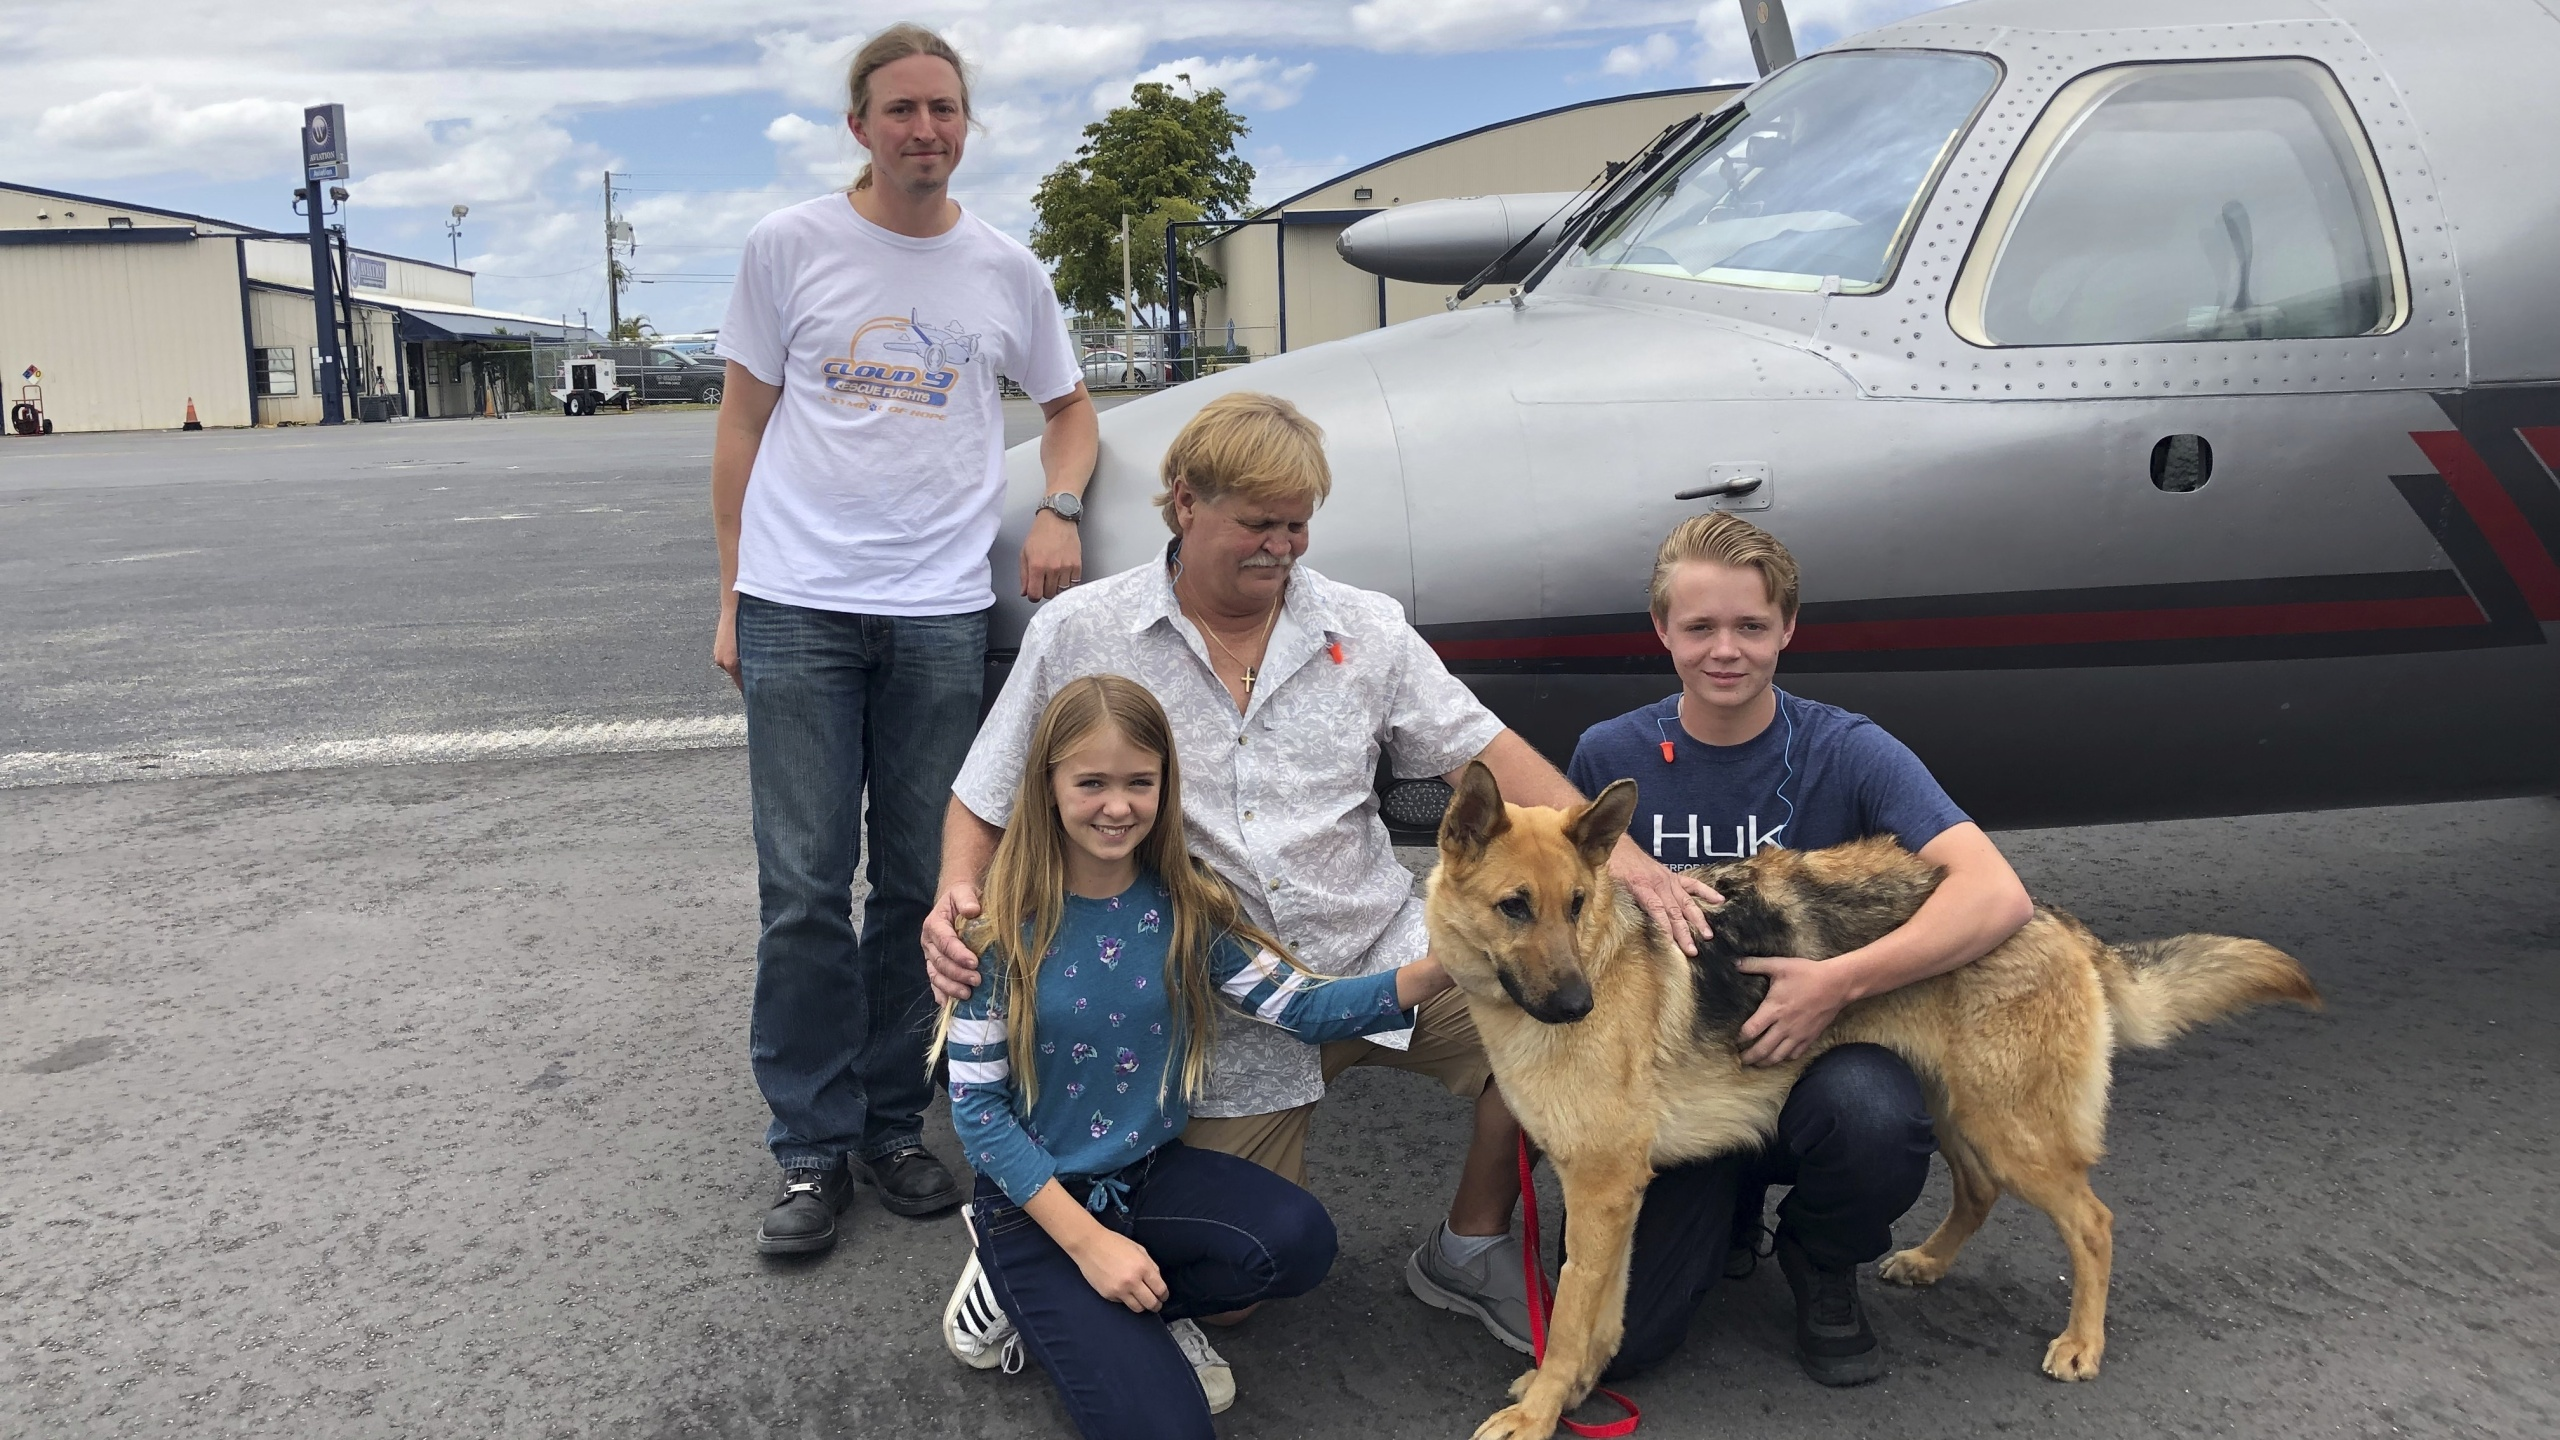 Dog returns to Florida owners